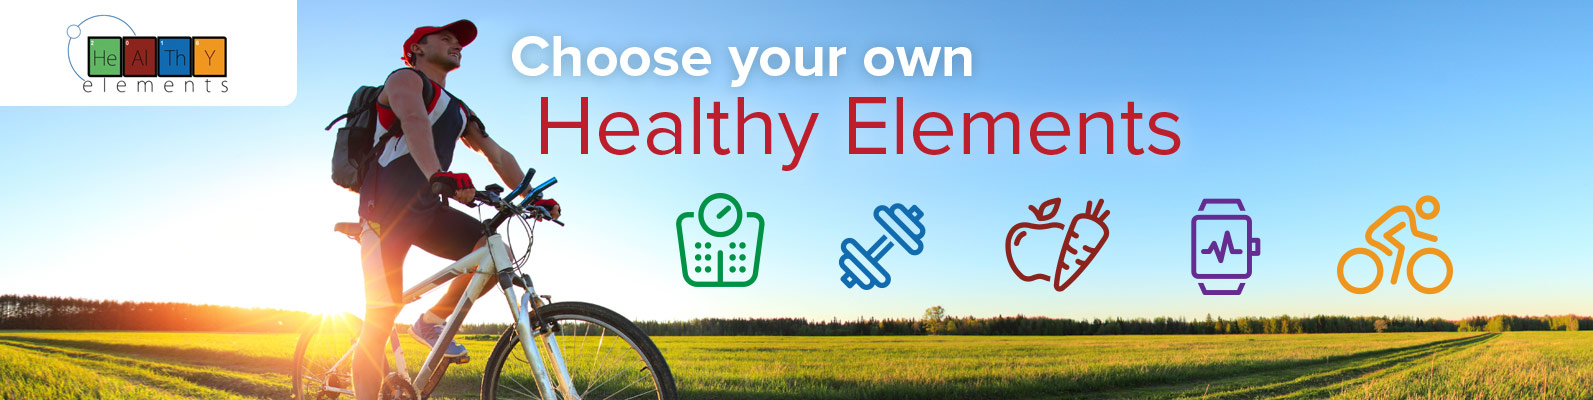 Choose your own Healthy Elements